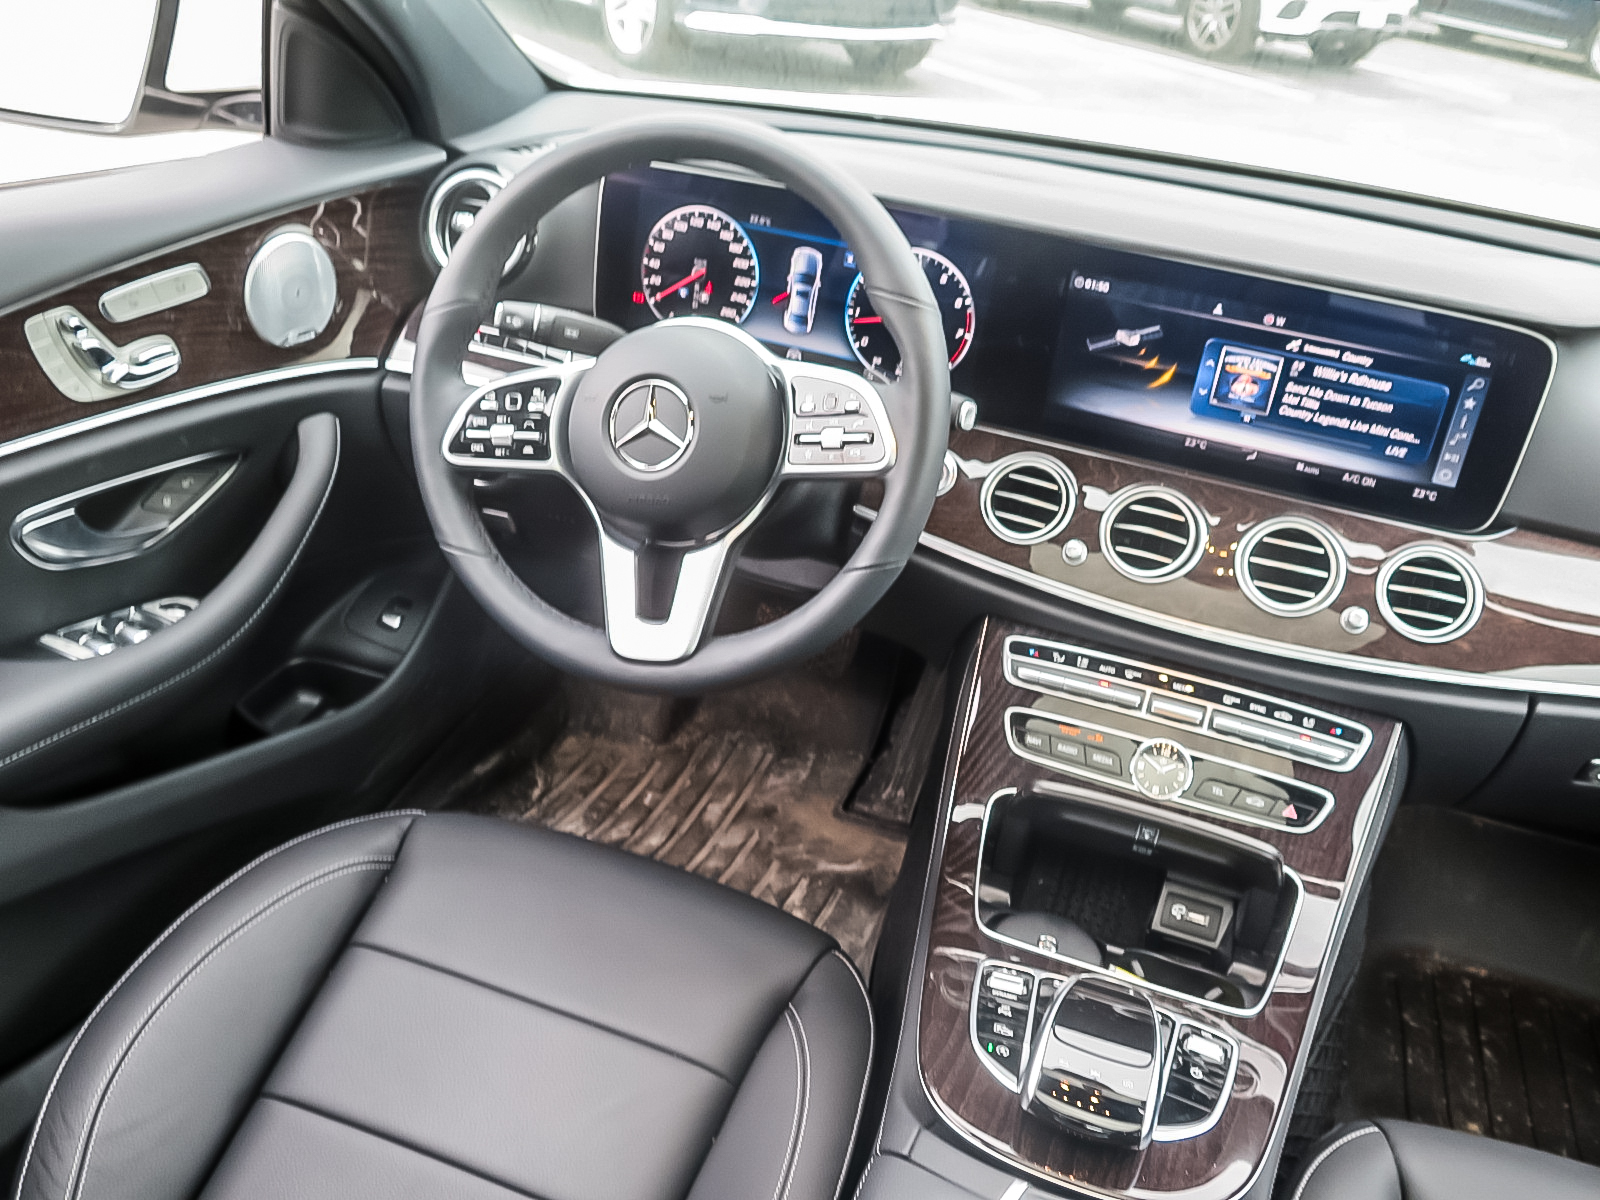 New 2019 Mercedes-Benz E450 4MATIC Sedan